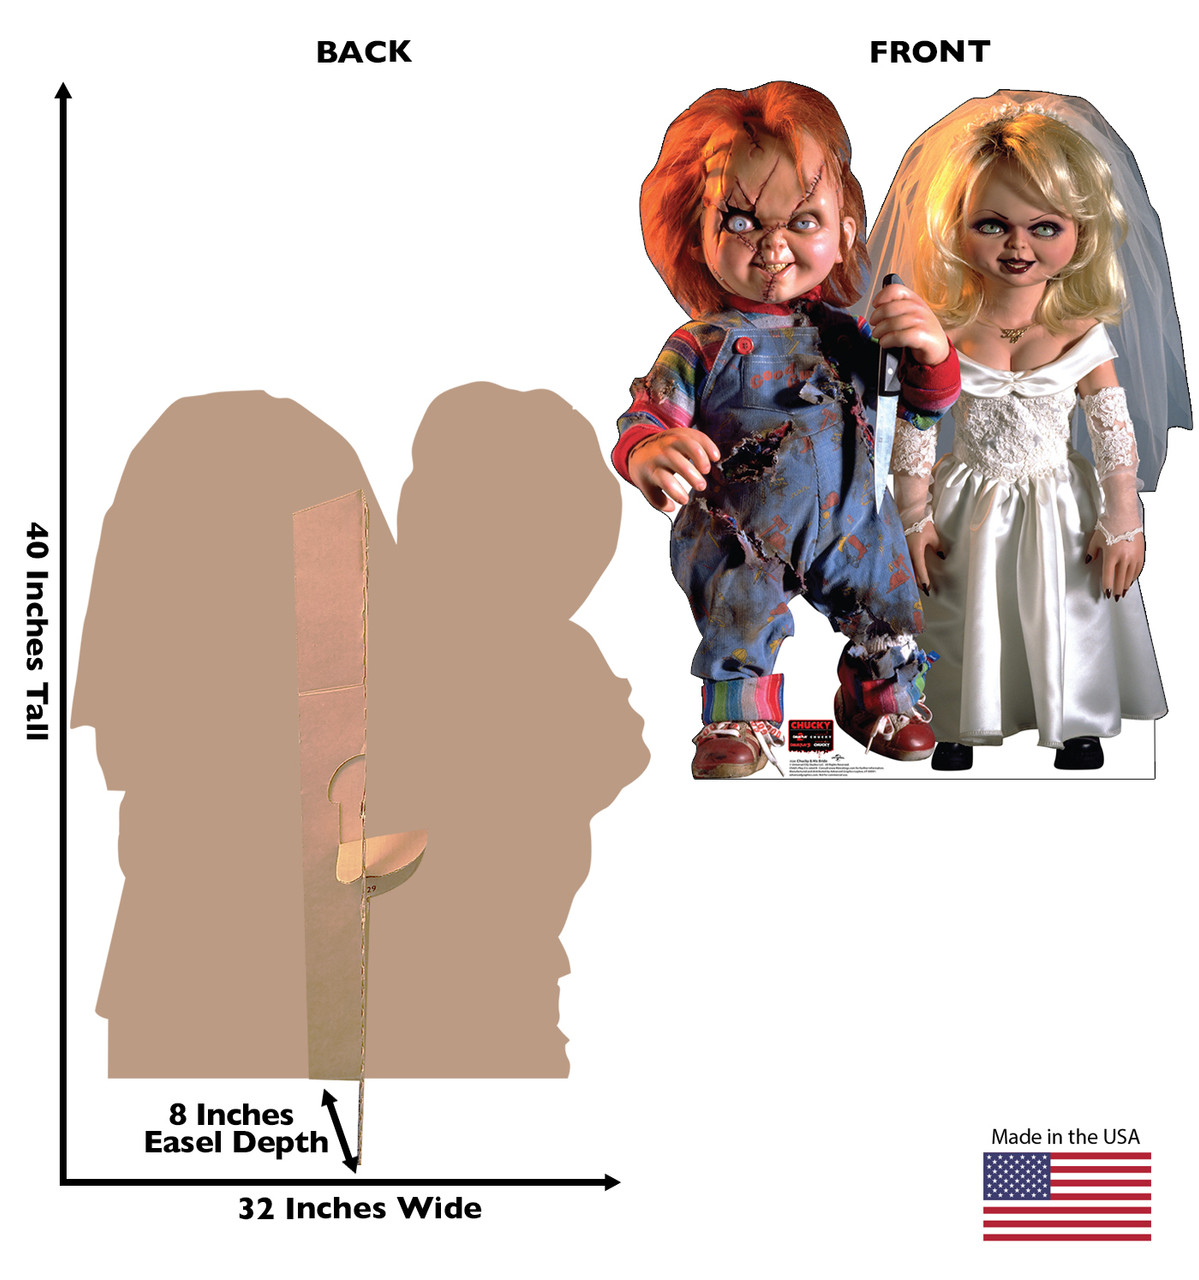 Life-size cardboard standee of Chucky and His Bride with back and front dimensions.